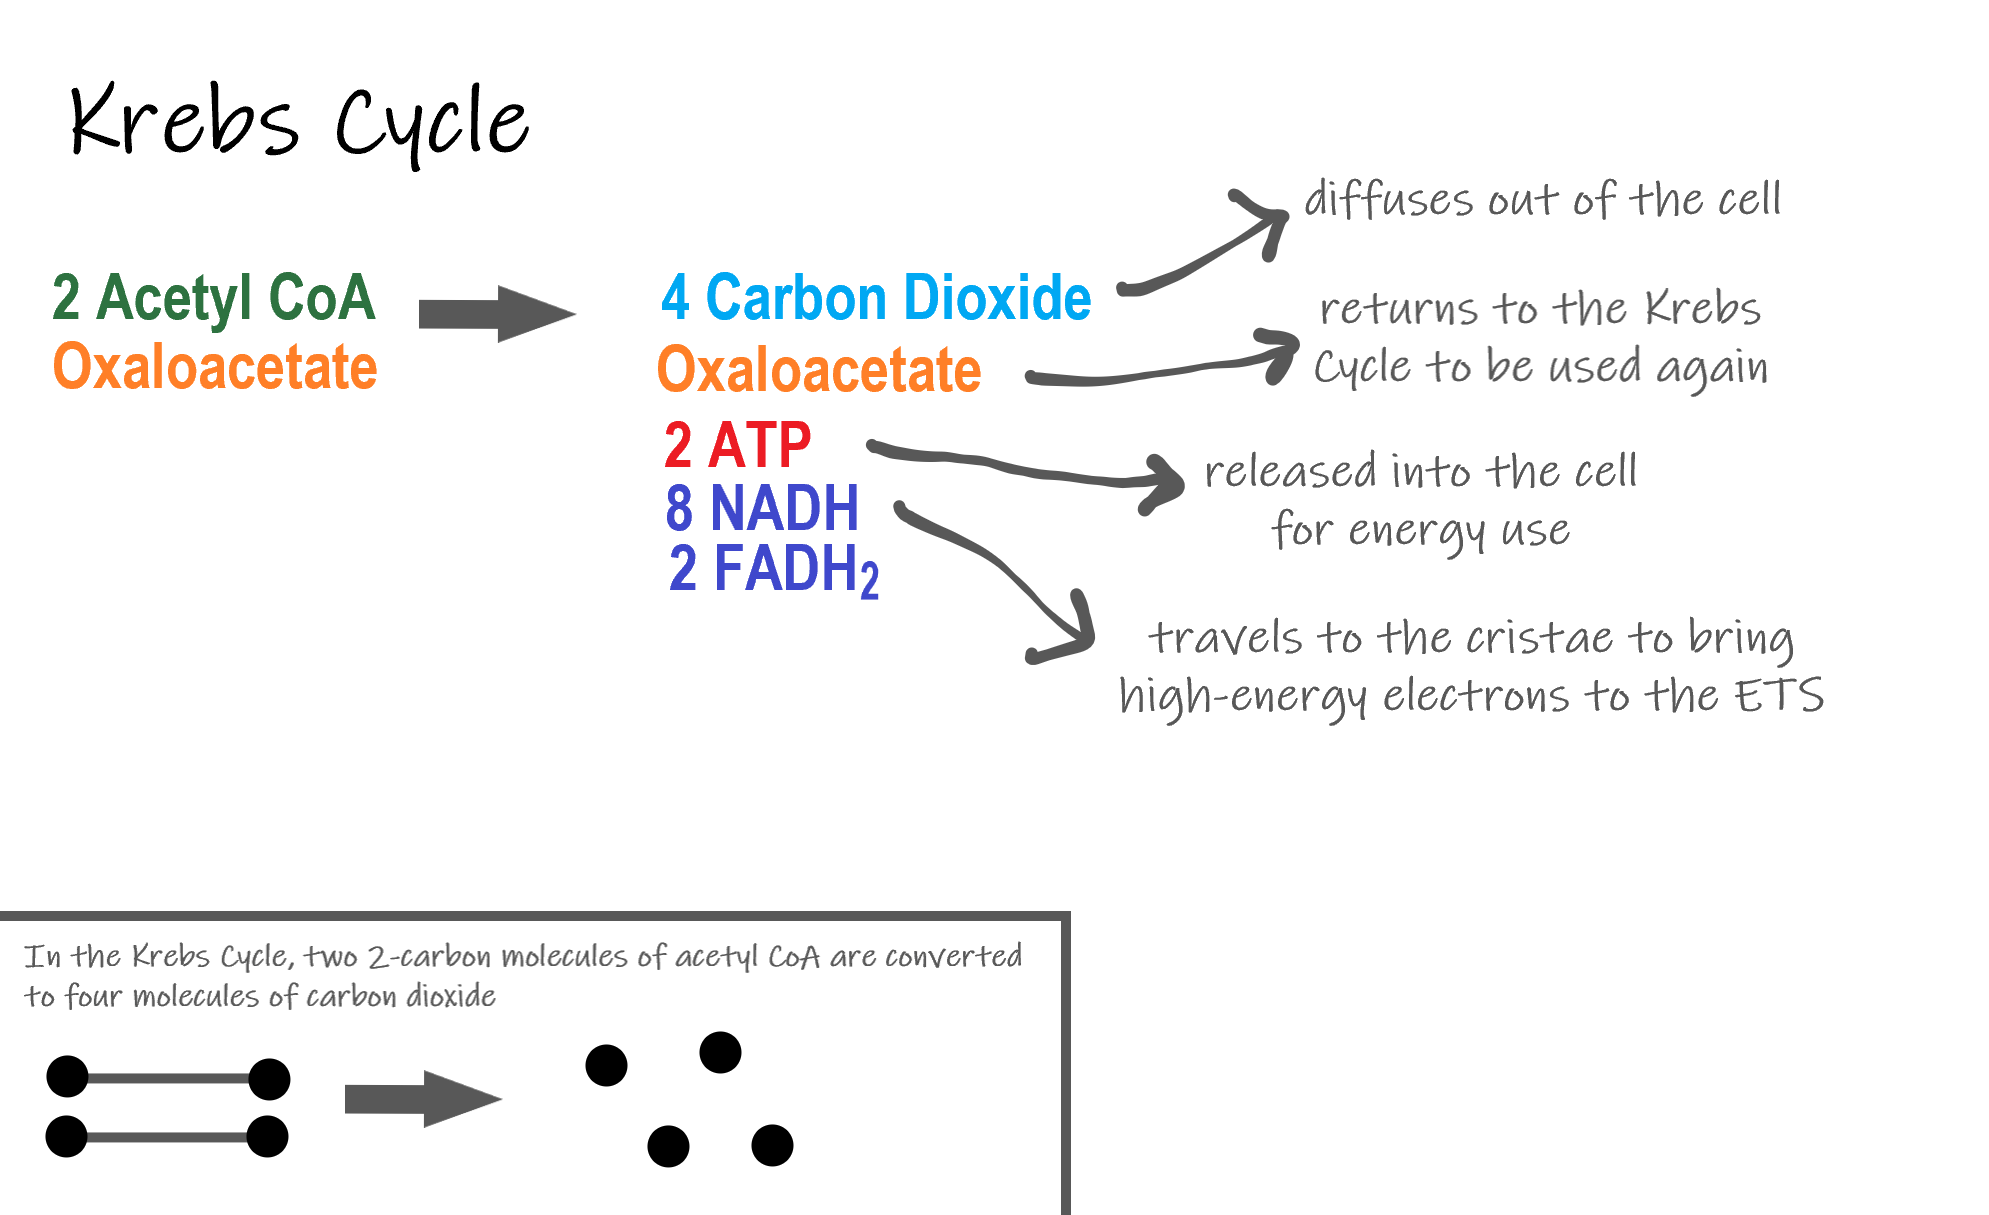 Image shows a diagram of the reactants and products of the Krebs Cycle. Two molecules of acetyl CoA are converted to 4 carbon dioxide which are released as cellular waste, 2 ATP which are used in the cell for energy, and 8 NADH and 2 FADH2, both of which travel to the ETS.